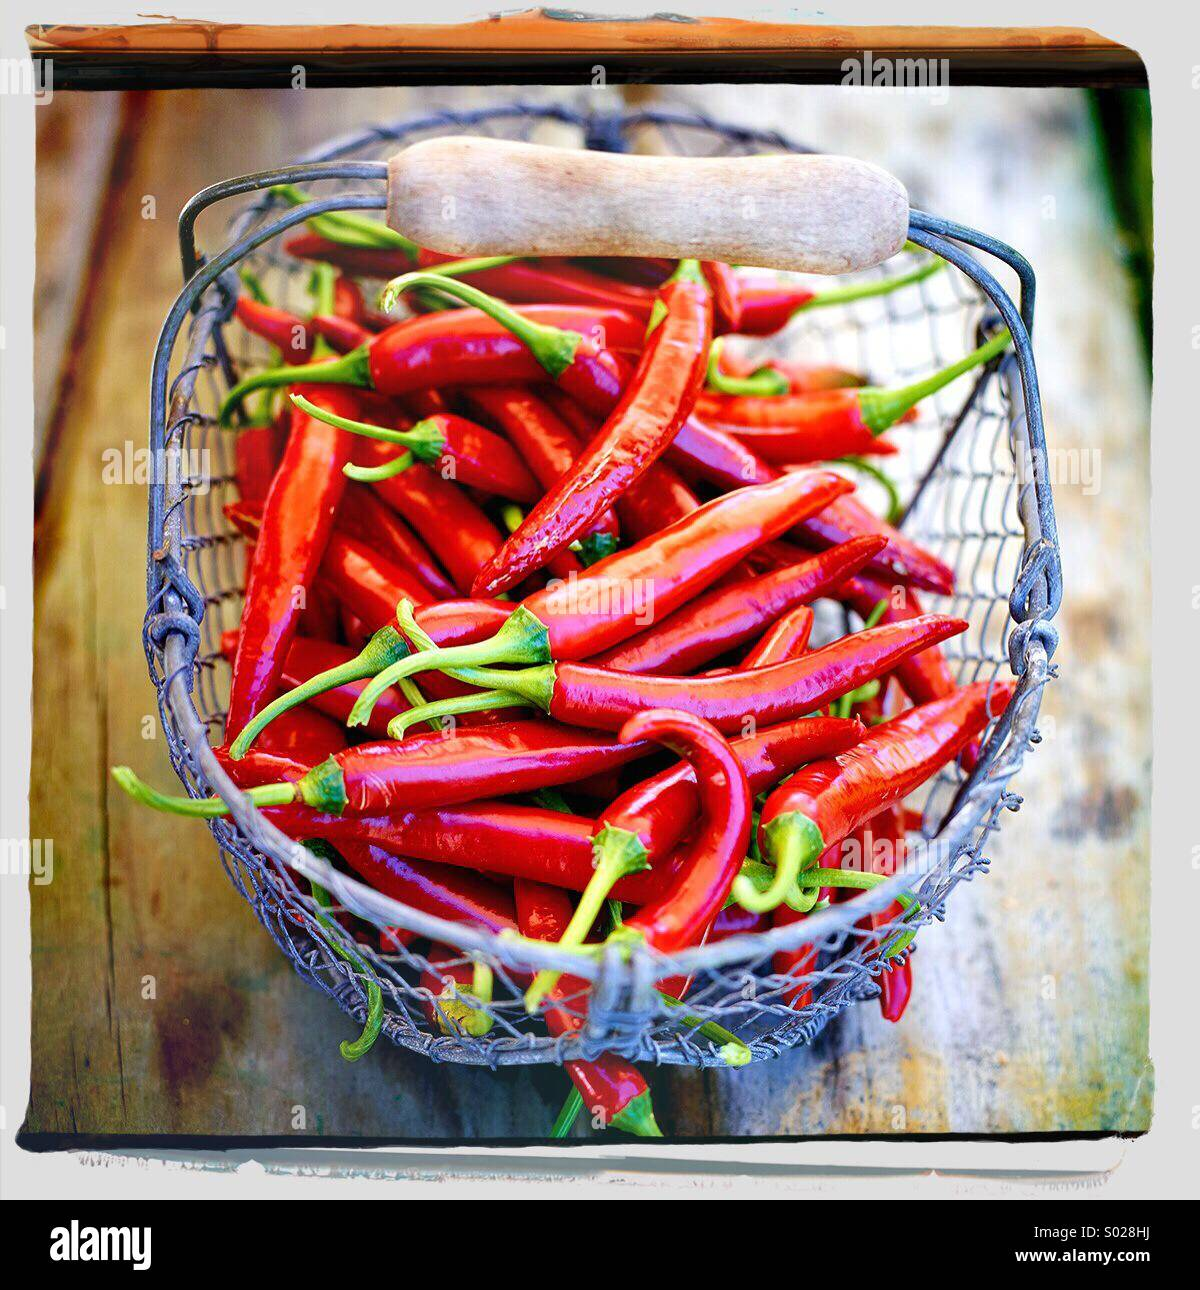 Basket of red hot chilli peppers - Stock Image